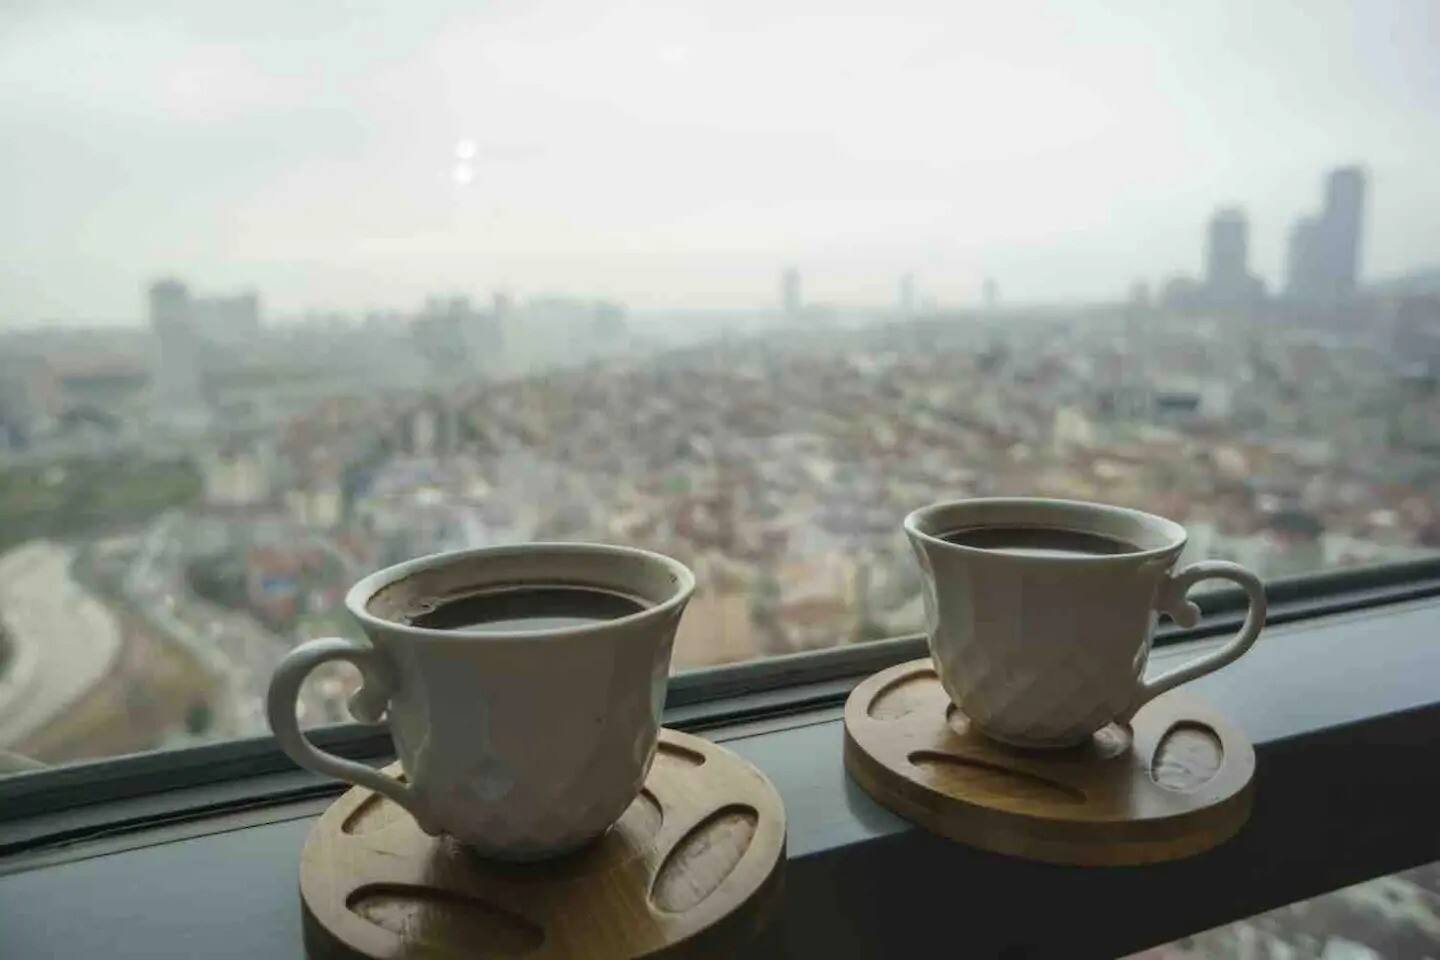 beautiful view deserves a coffee